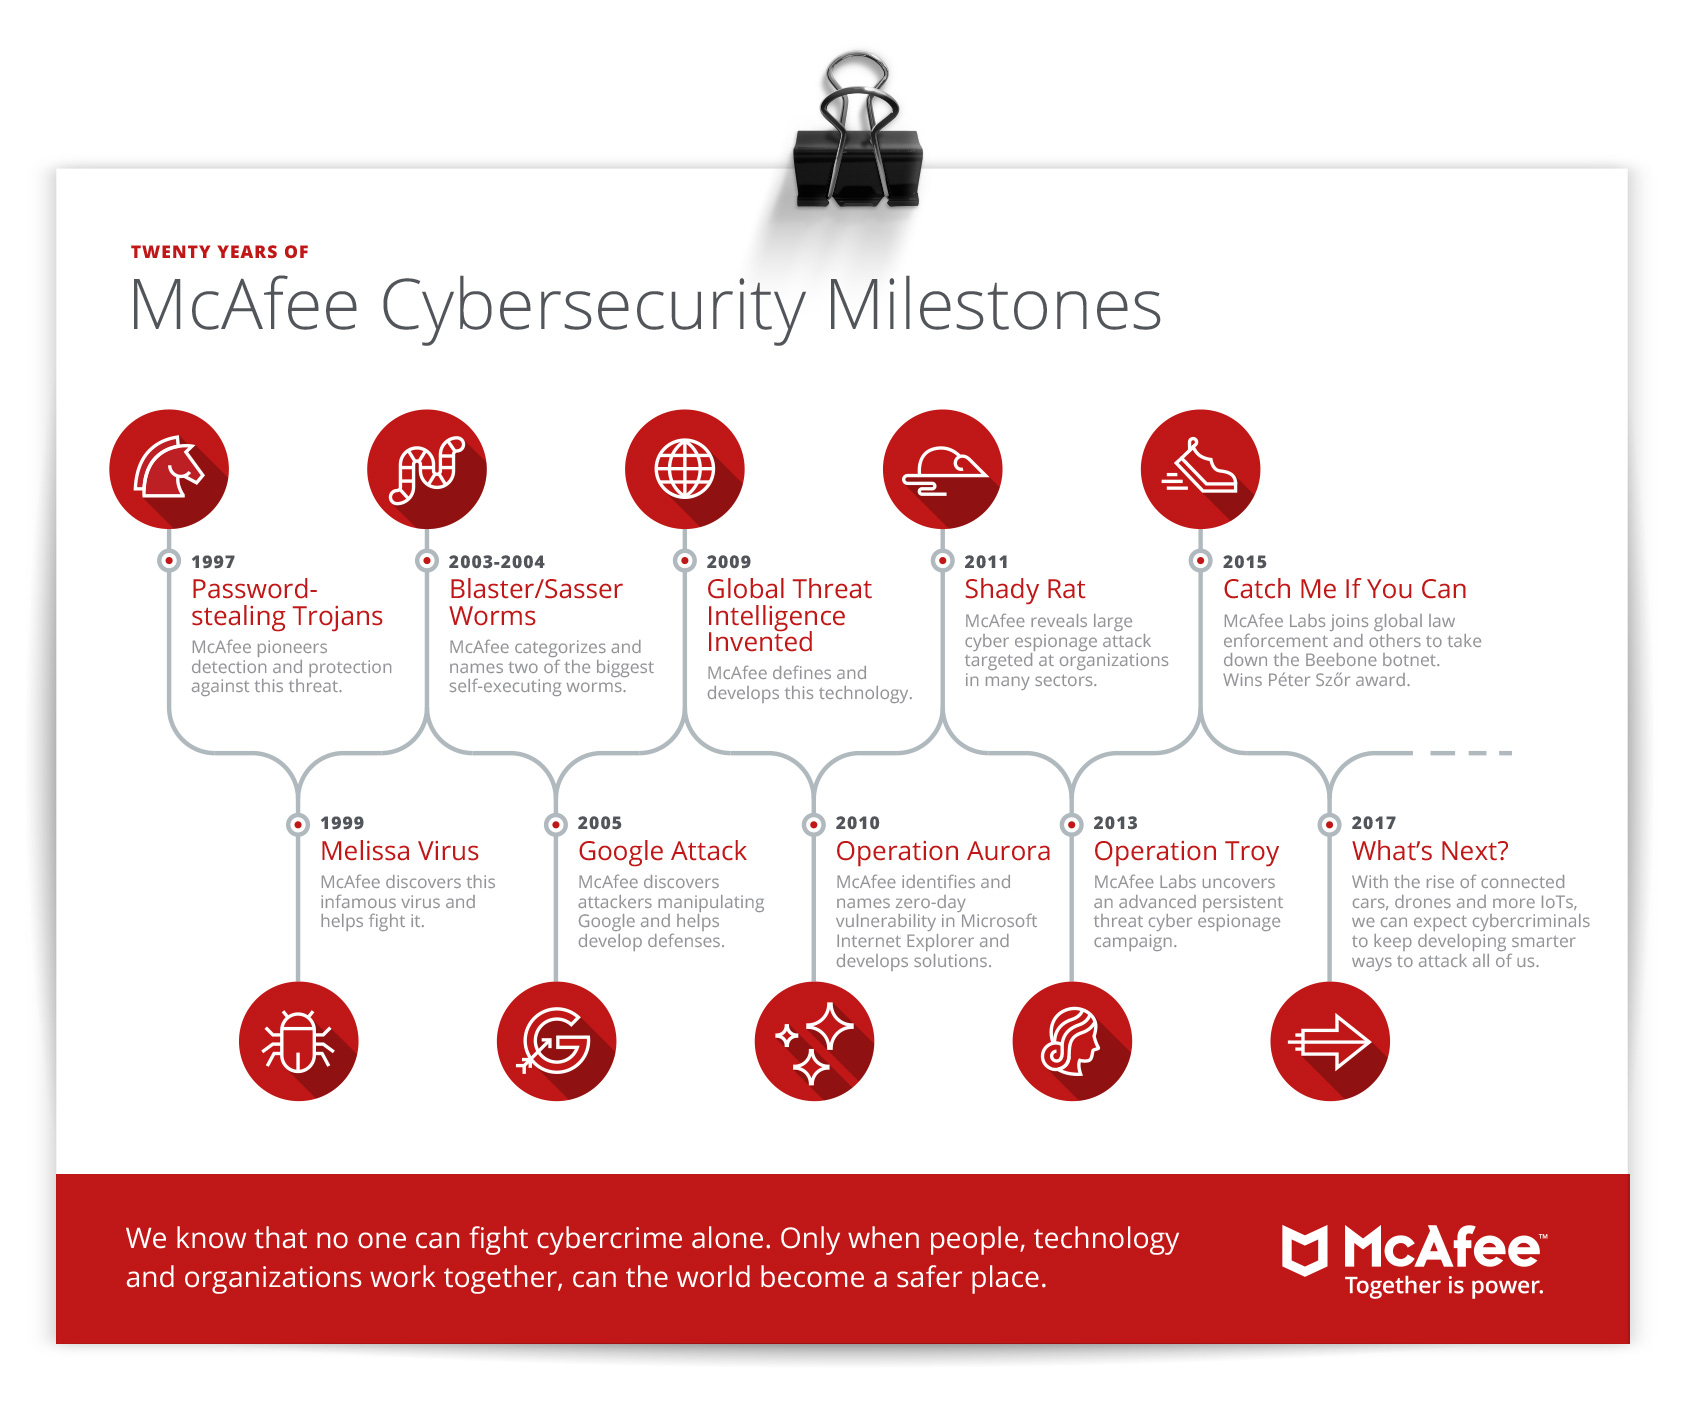 Cybersecurity timeline for McAfee